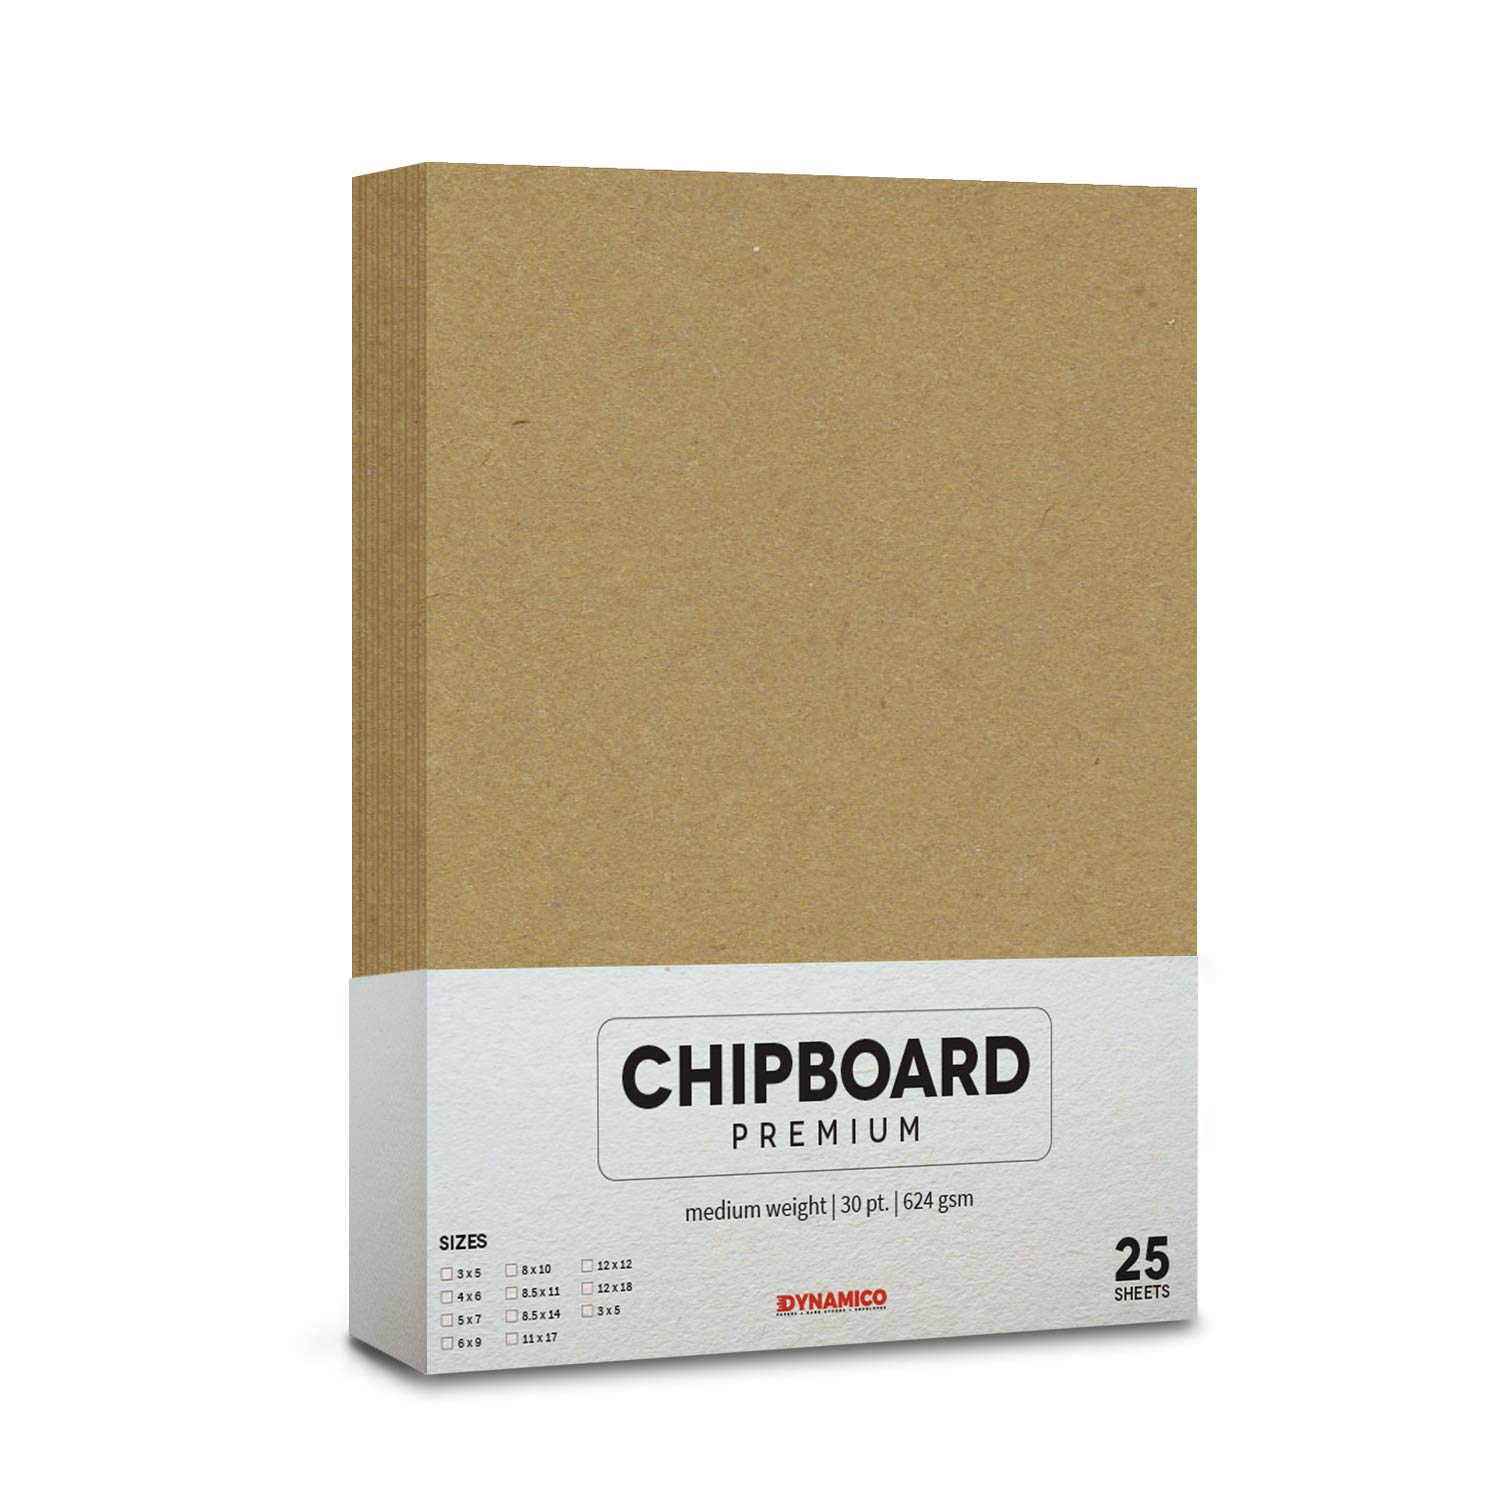 25 Sheets of Chipboard, 30pt (Point) Heavy Weight Cardboard .030 Caliper Thickness, Craft and Packing, Brown Kraft Paper Board (6 x 9)